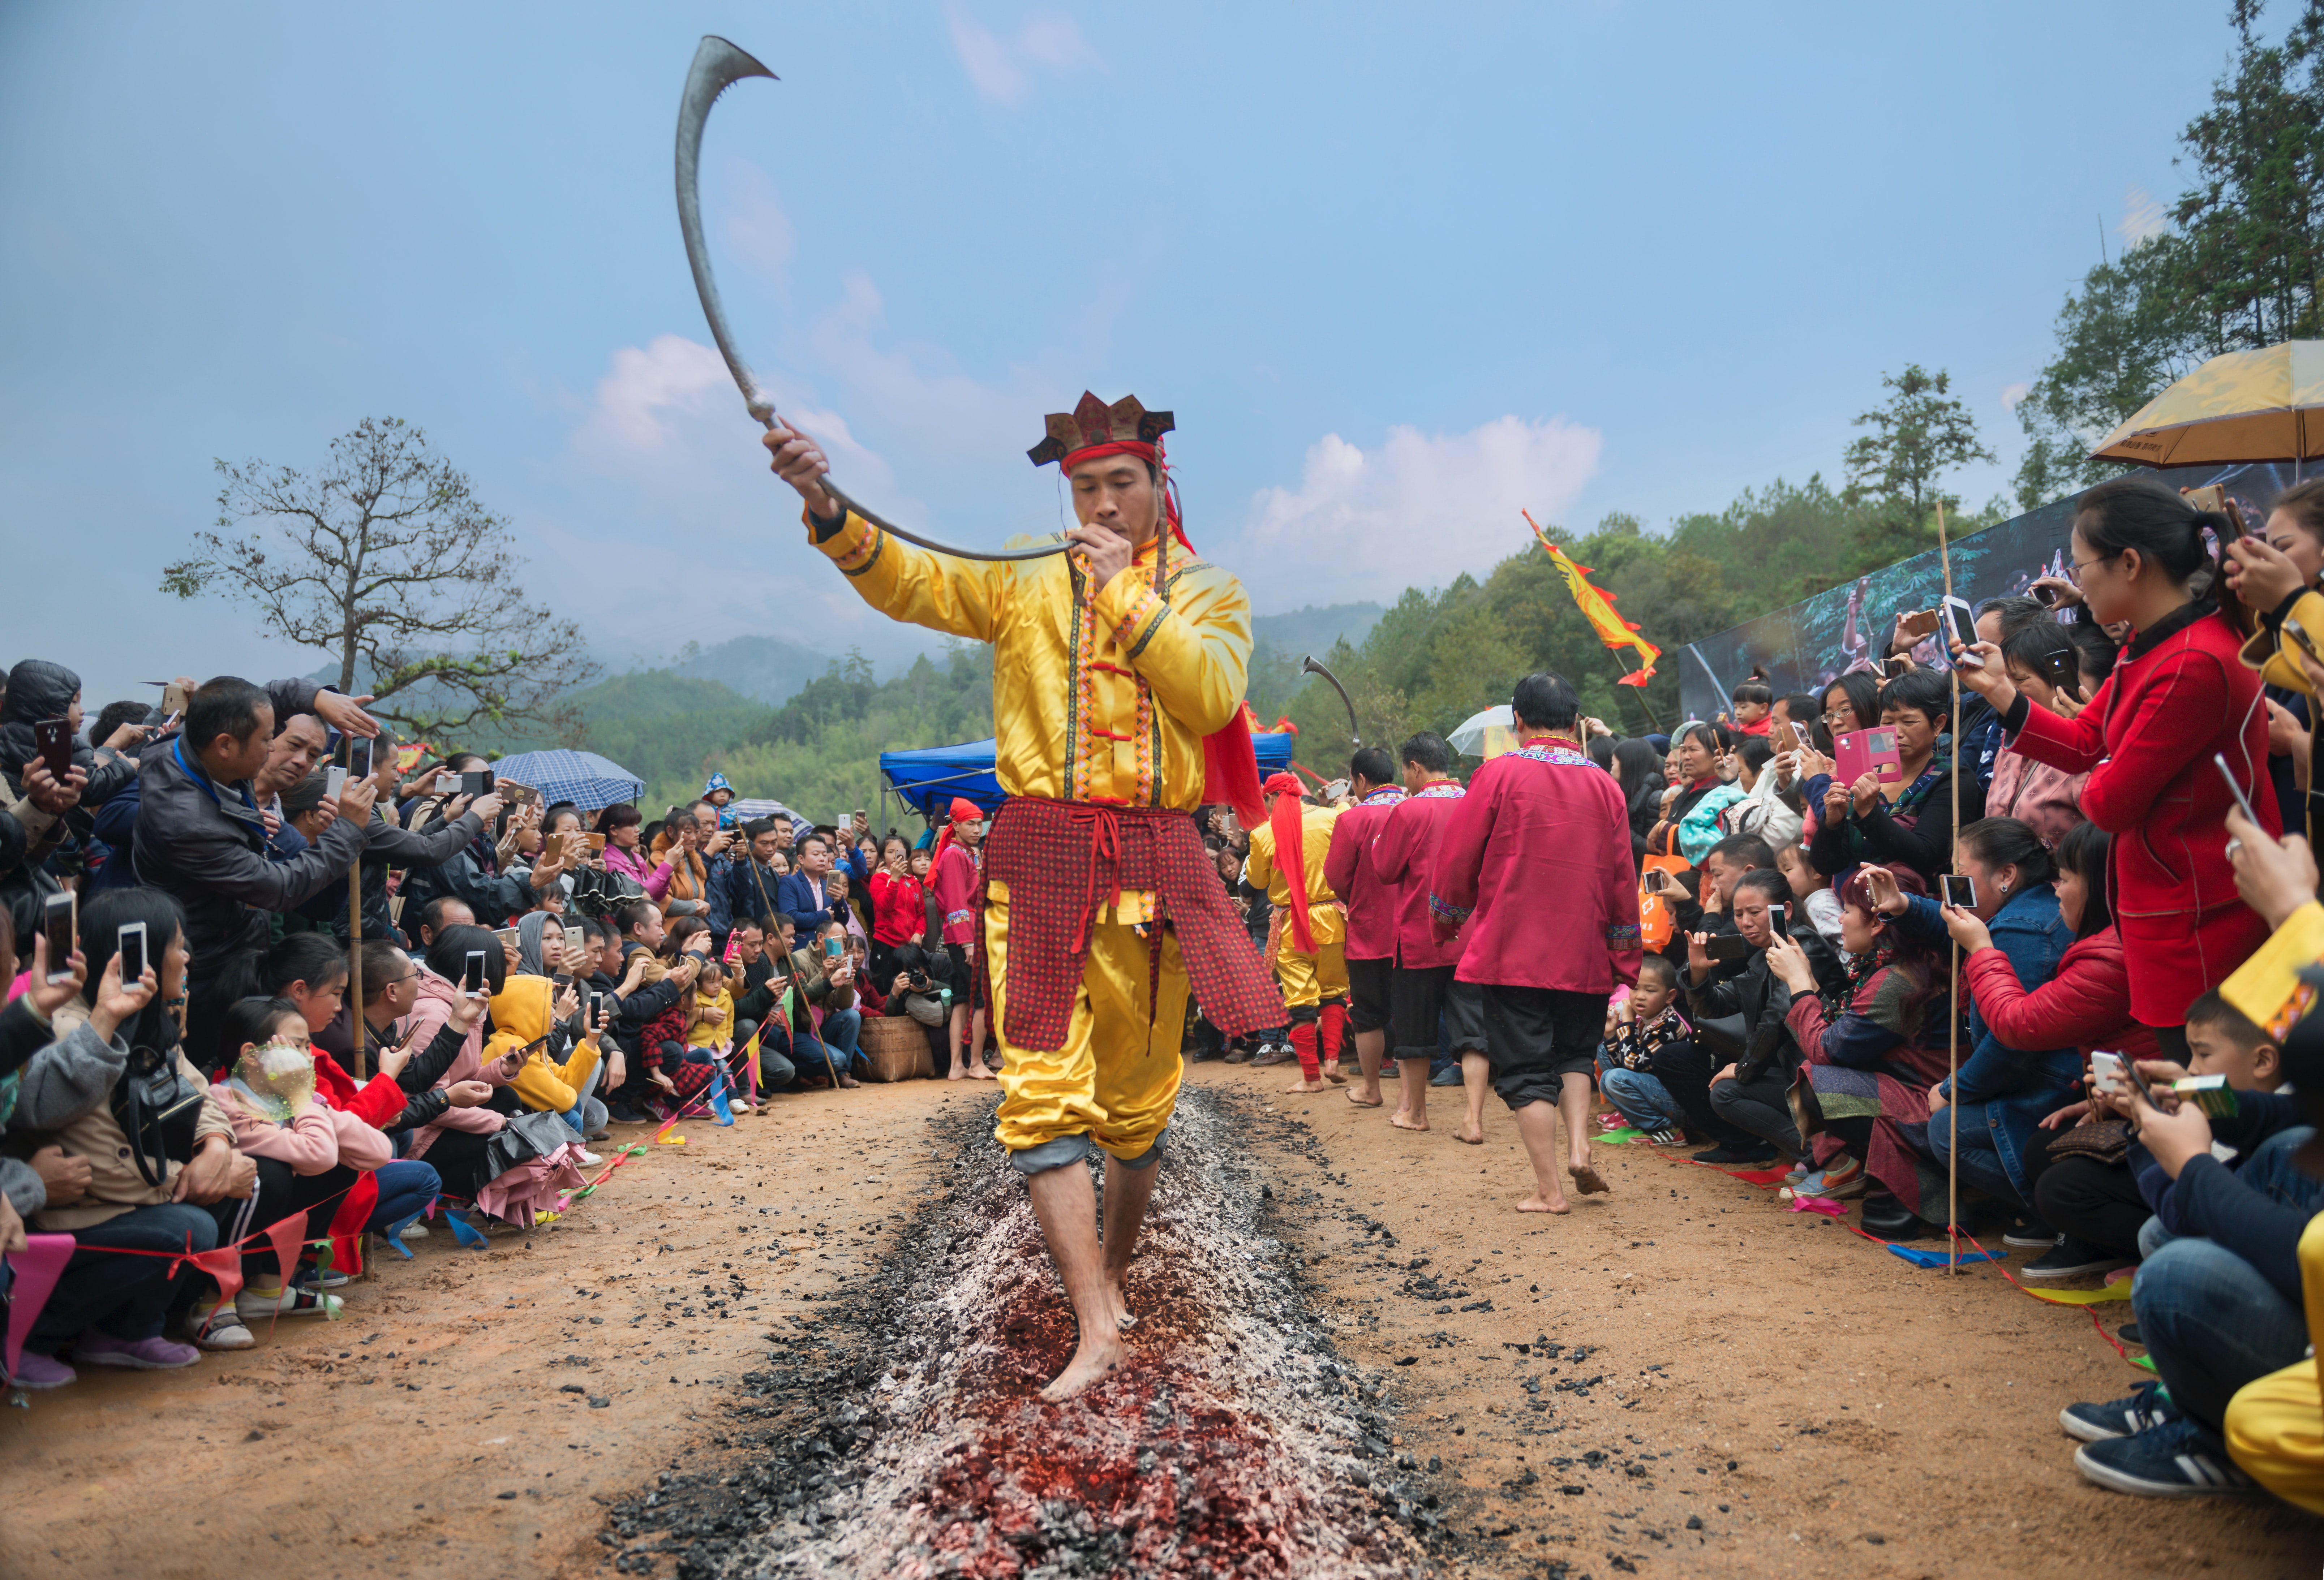 man performing traditional dance while holding sword